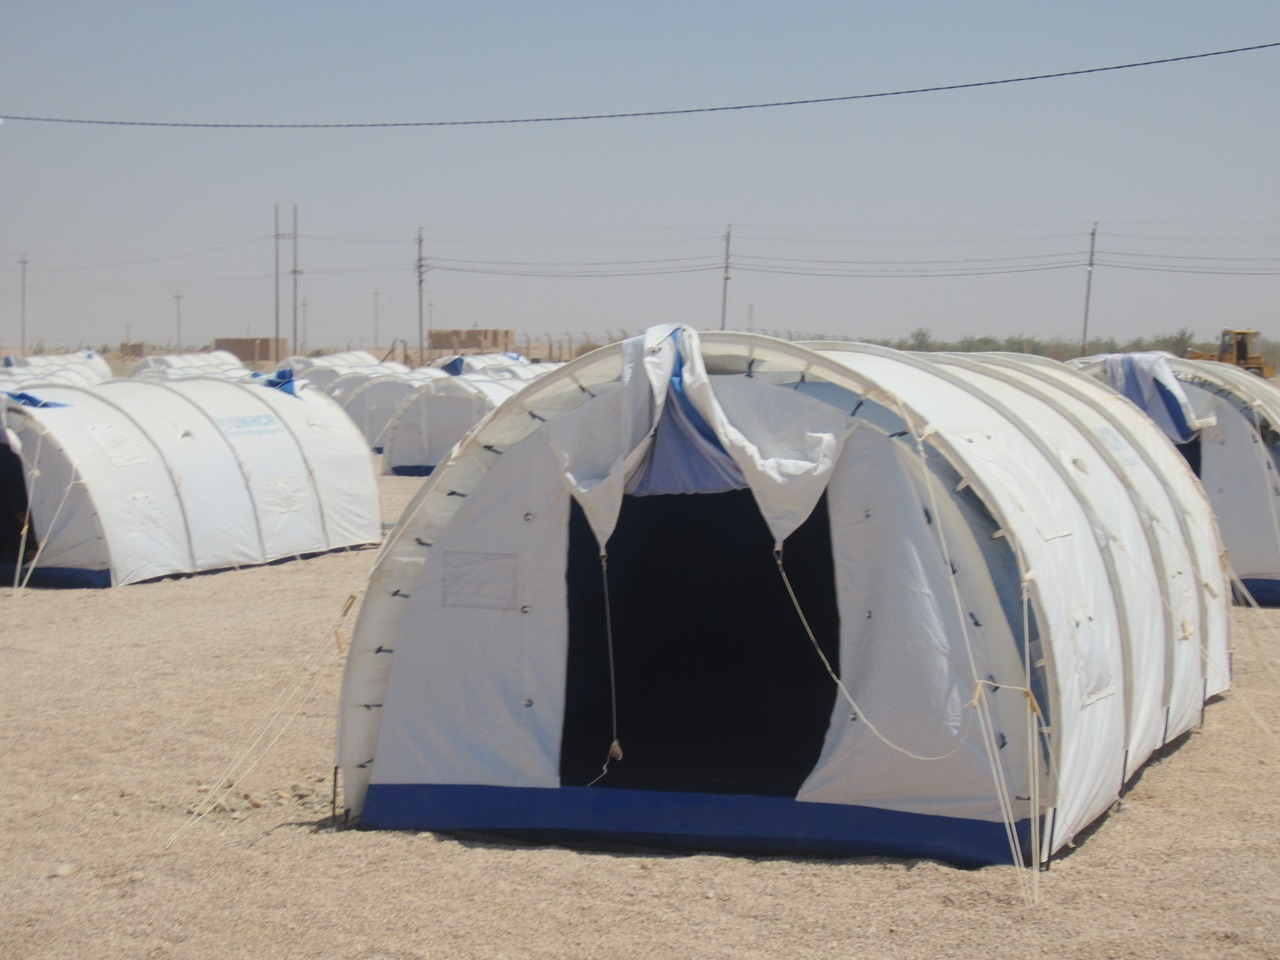 humanrightswatch:  A UNHCR tent camp in al-Qaim, Iraq. Syrian refugees have been gradually moved there since mid August from schools in al-Qaim where the Iraqi government had been confining them since late July. As of August 28, over 2,000 refugees were in the camp, and close to 2,000 remained in schools, guarded by the Iraqi police and military and not allowed to leave. August 9, 2012. Read more after the jump. Photo © 2012 Human Rights Watch